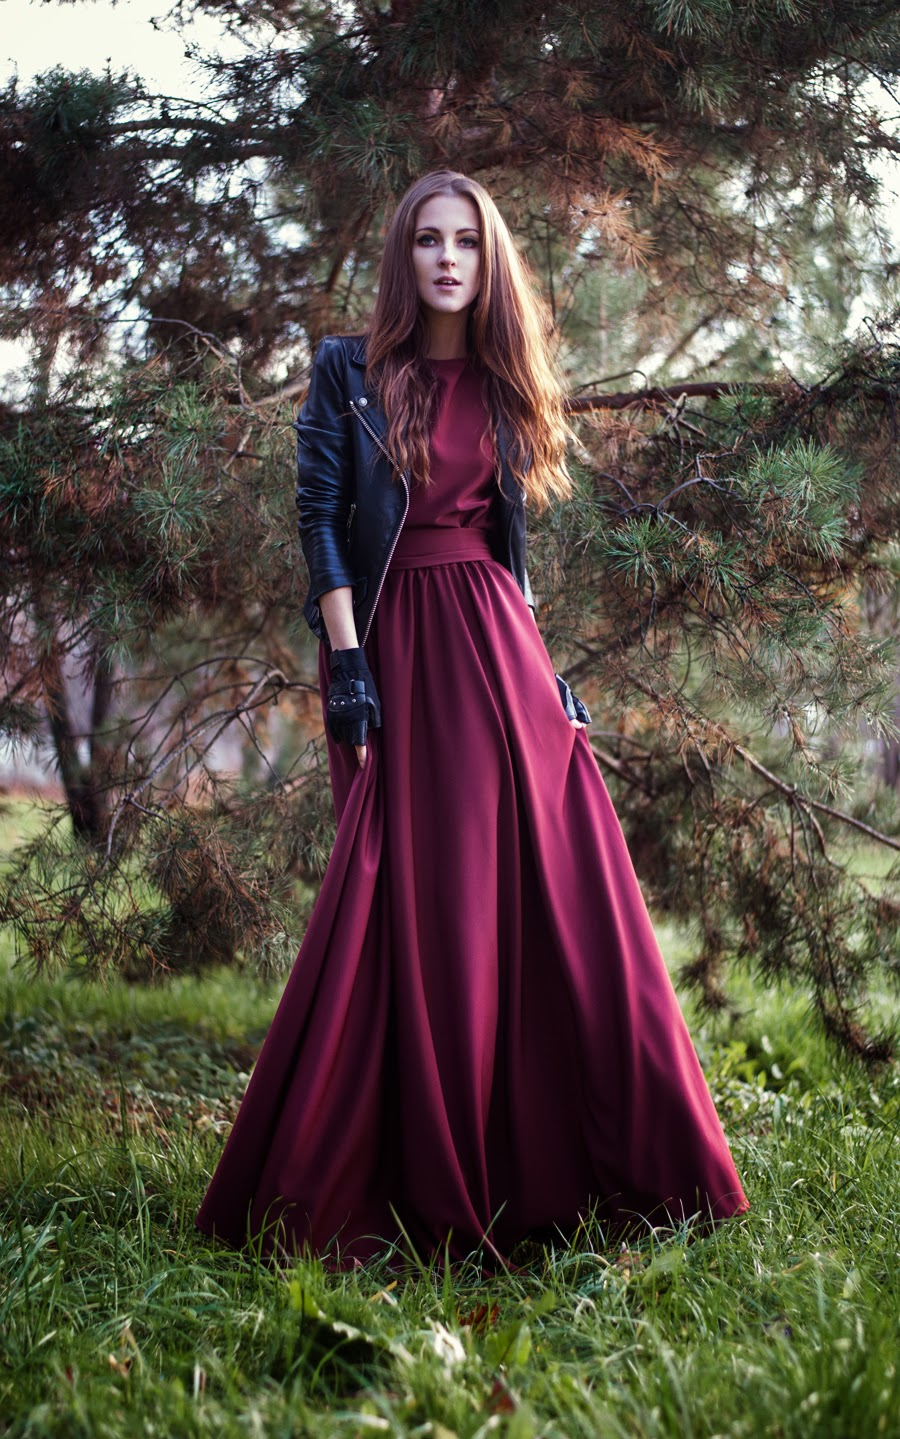 red dress, burgundy, leather jacket and dress, outfit, ootd, shooting, neon rock, dress campaign, fashion blogger